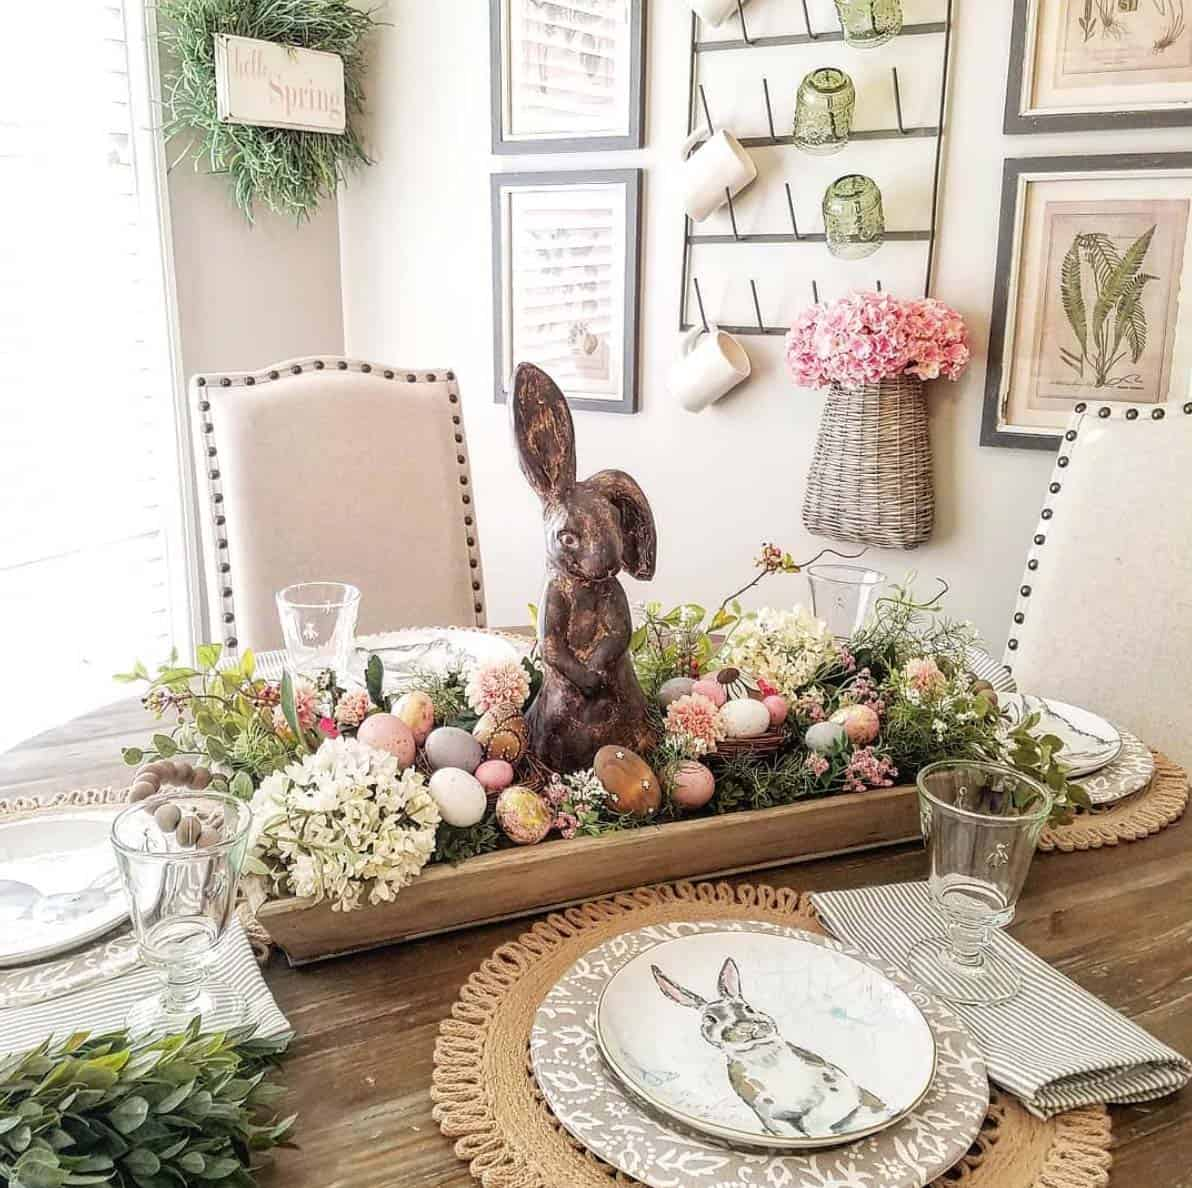 DOUGH BOWL SPRING DECOR